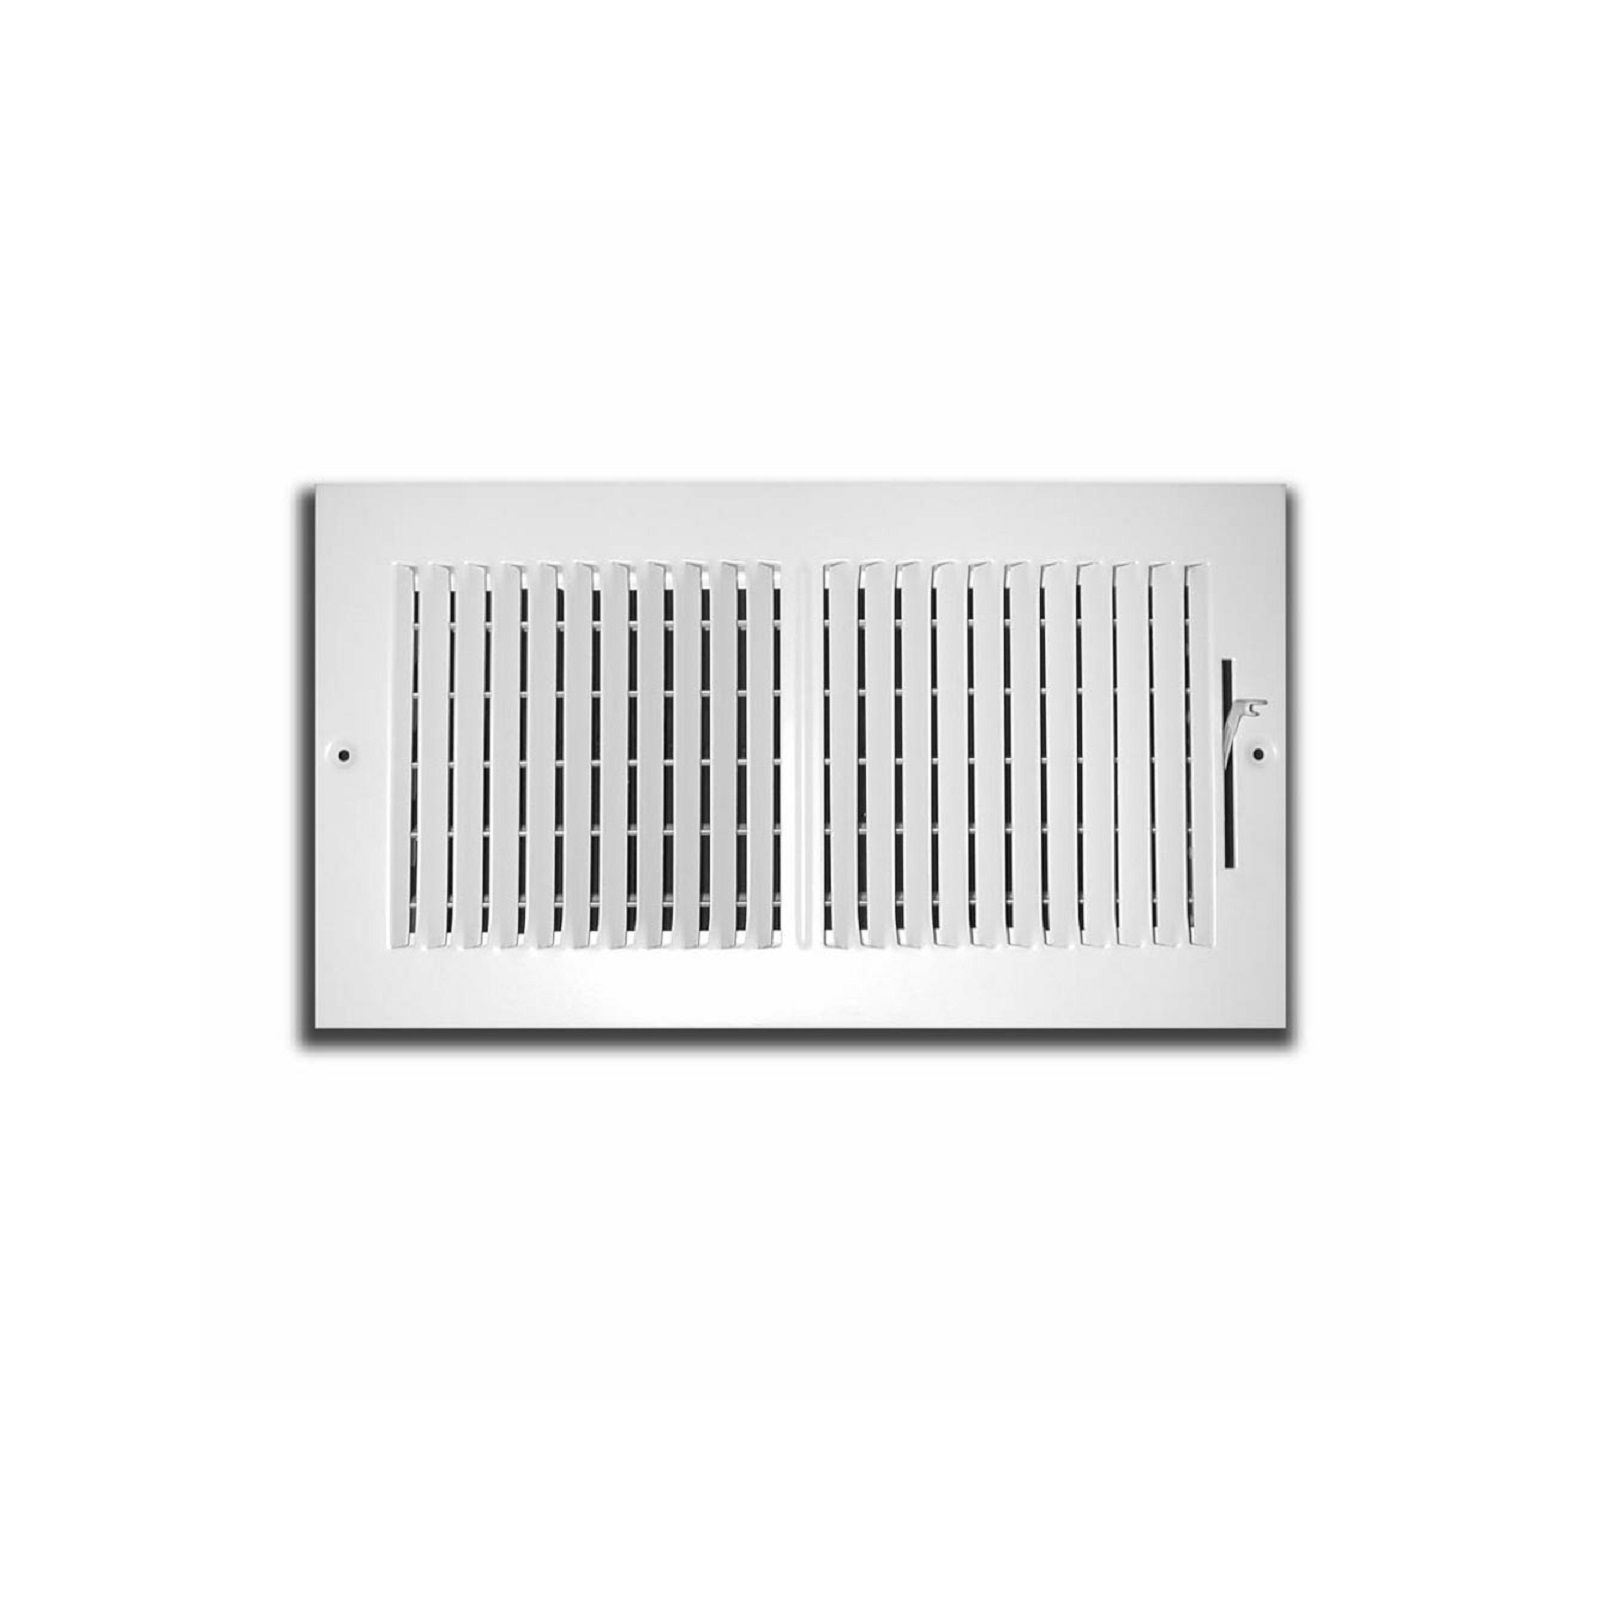 "TRUaire 102M 12X04 - Stamped Steel 2-Way Wall/Ceiling Register, 12"" X 04"""